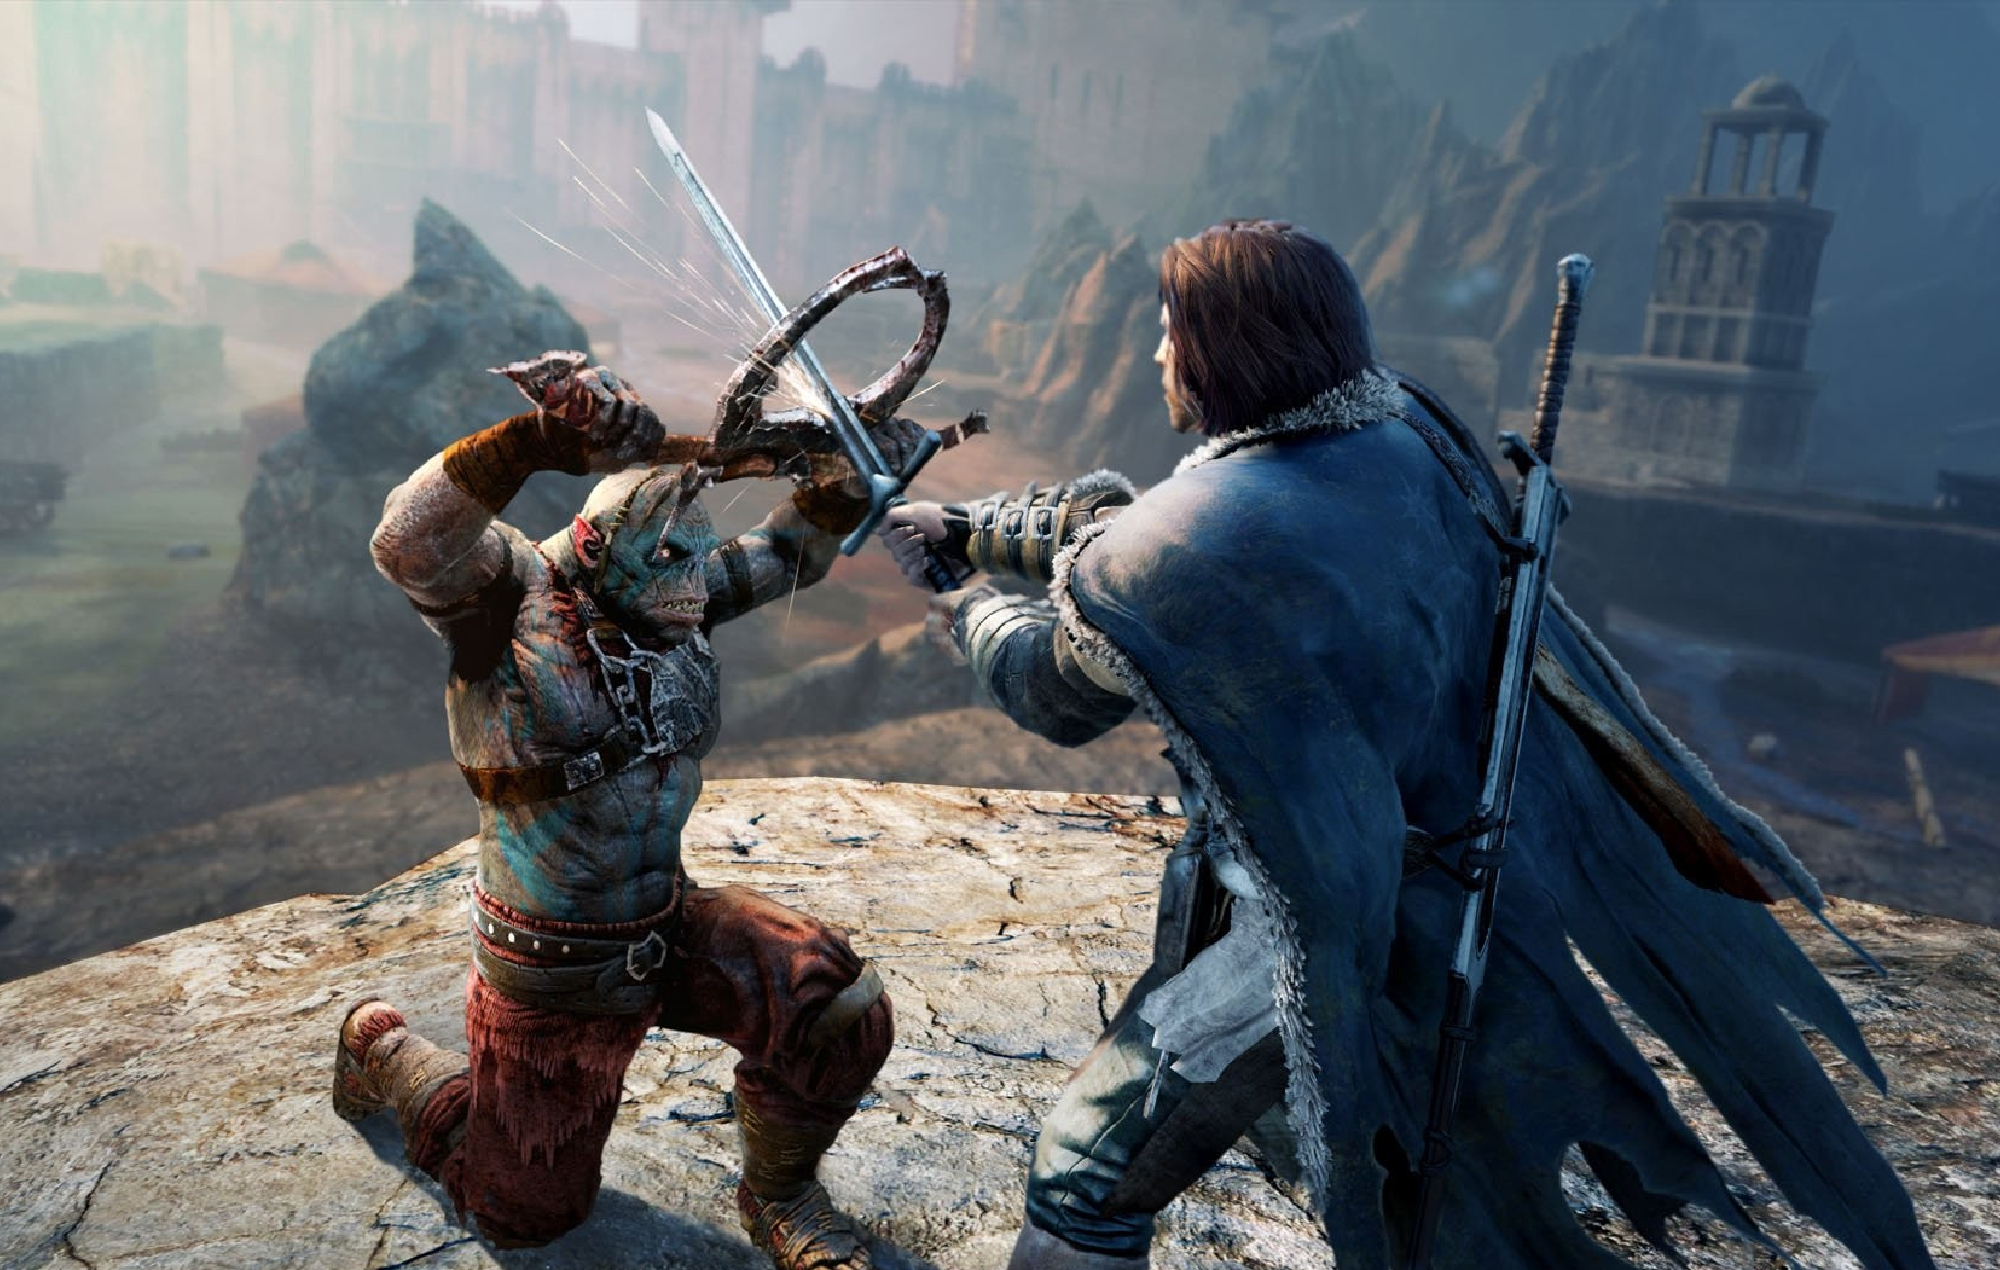 Lord of the Rings Middle Earth: Shadow of Mordor